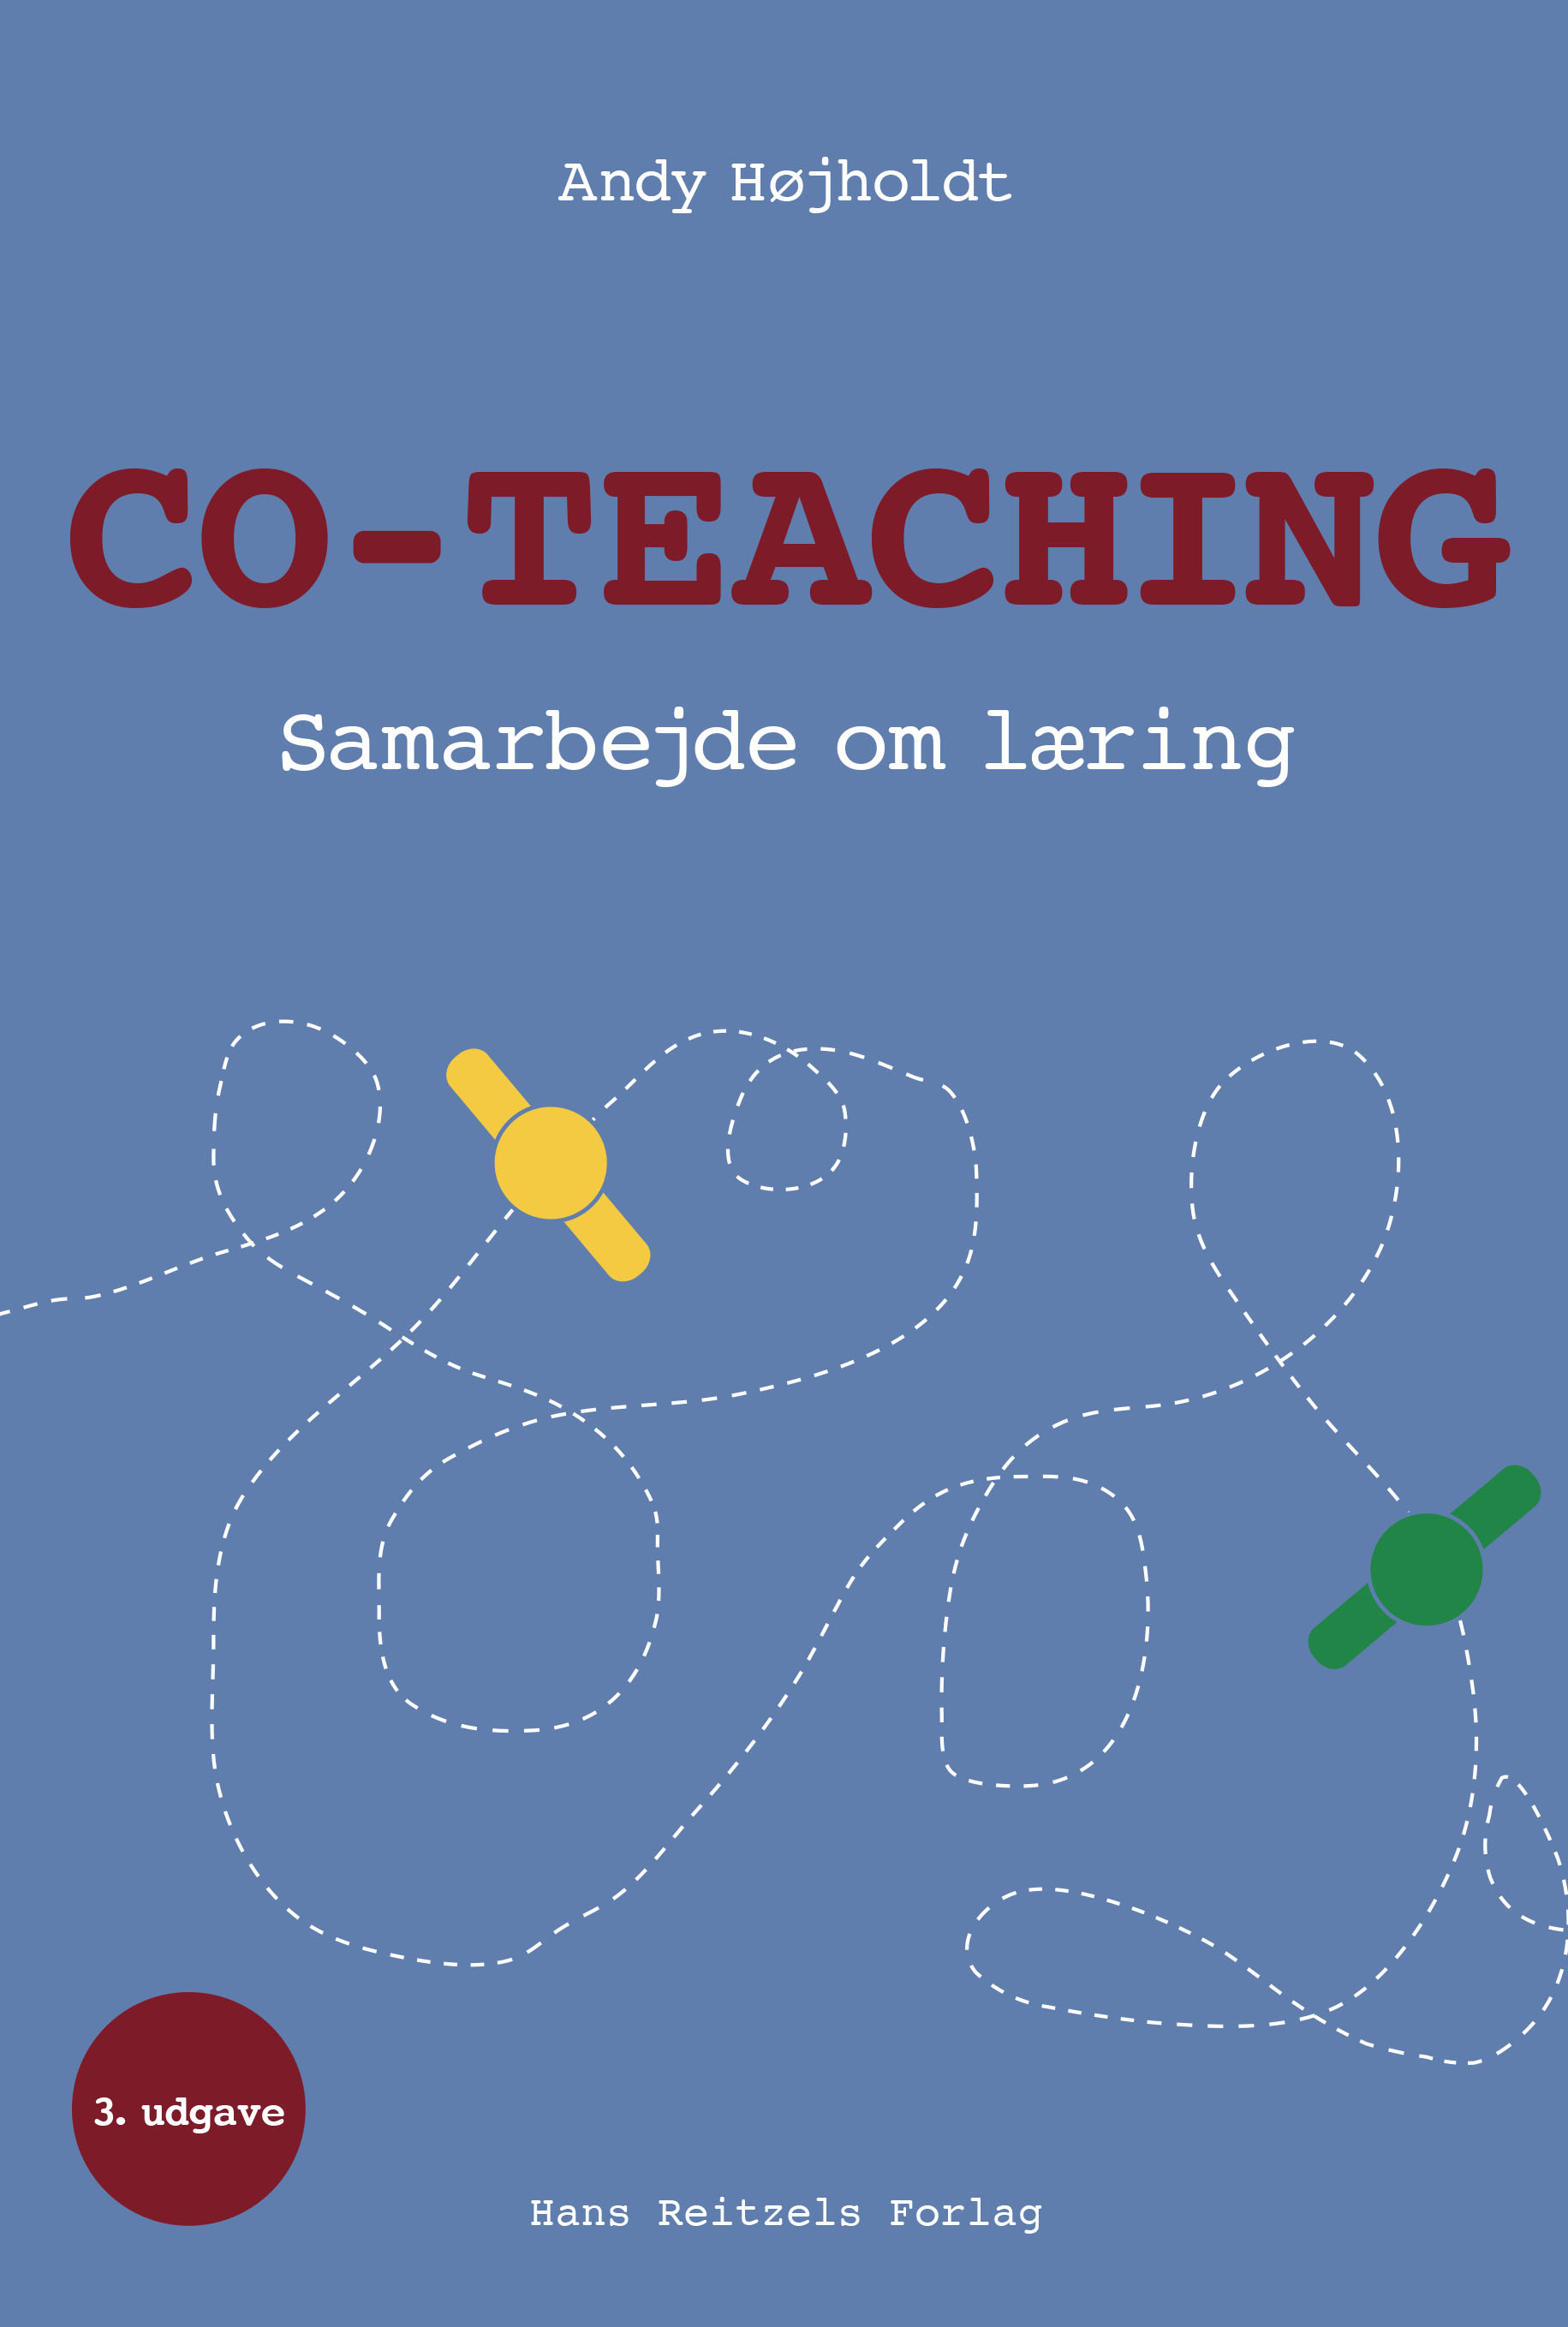 Co-teaching (3. udg)